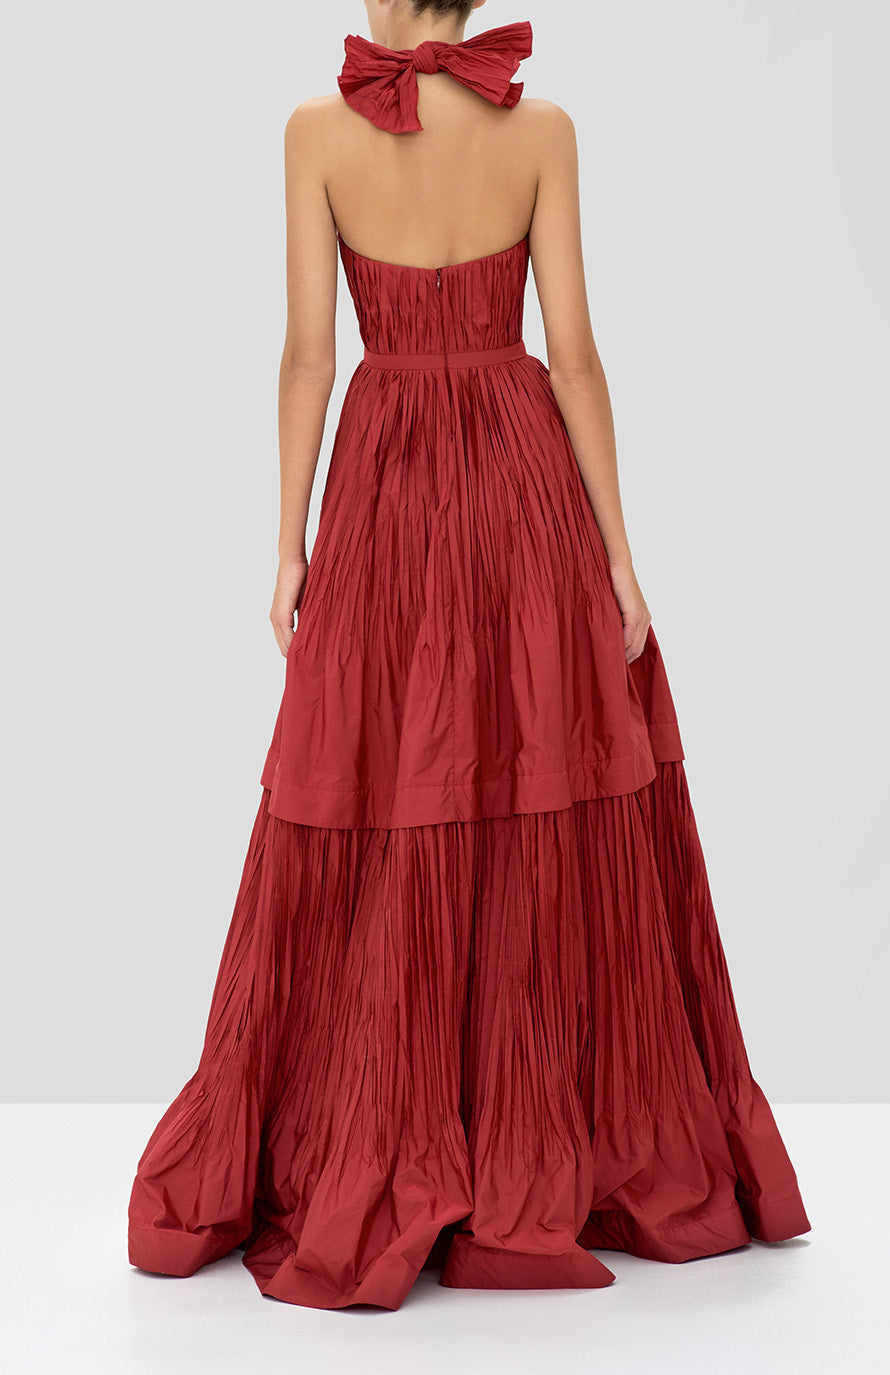 Alexis Tressa Gown in Burgundy from the Holiday 2019 Ready To Wear Collection - Rear View